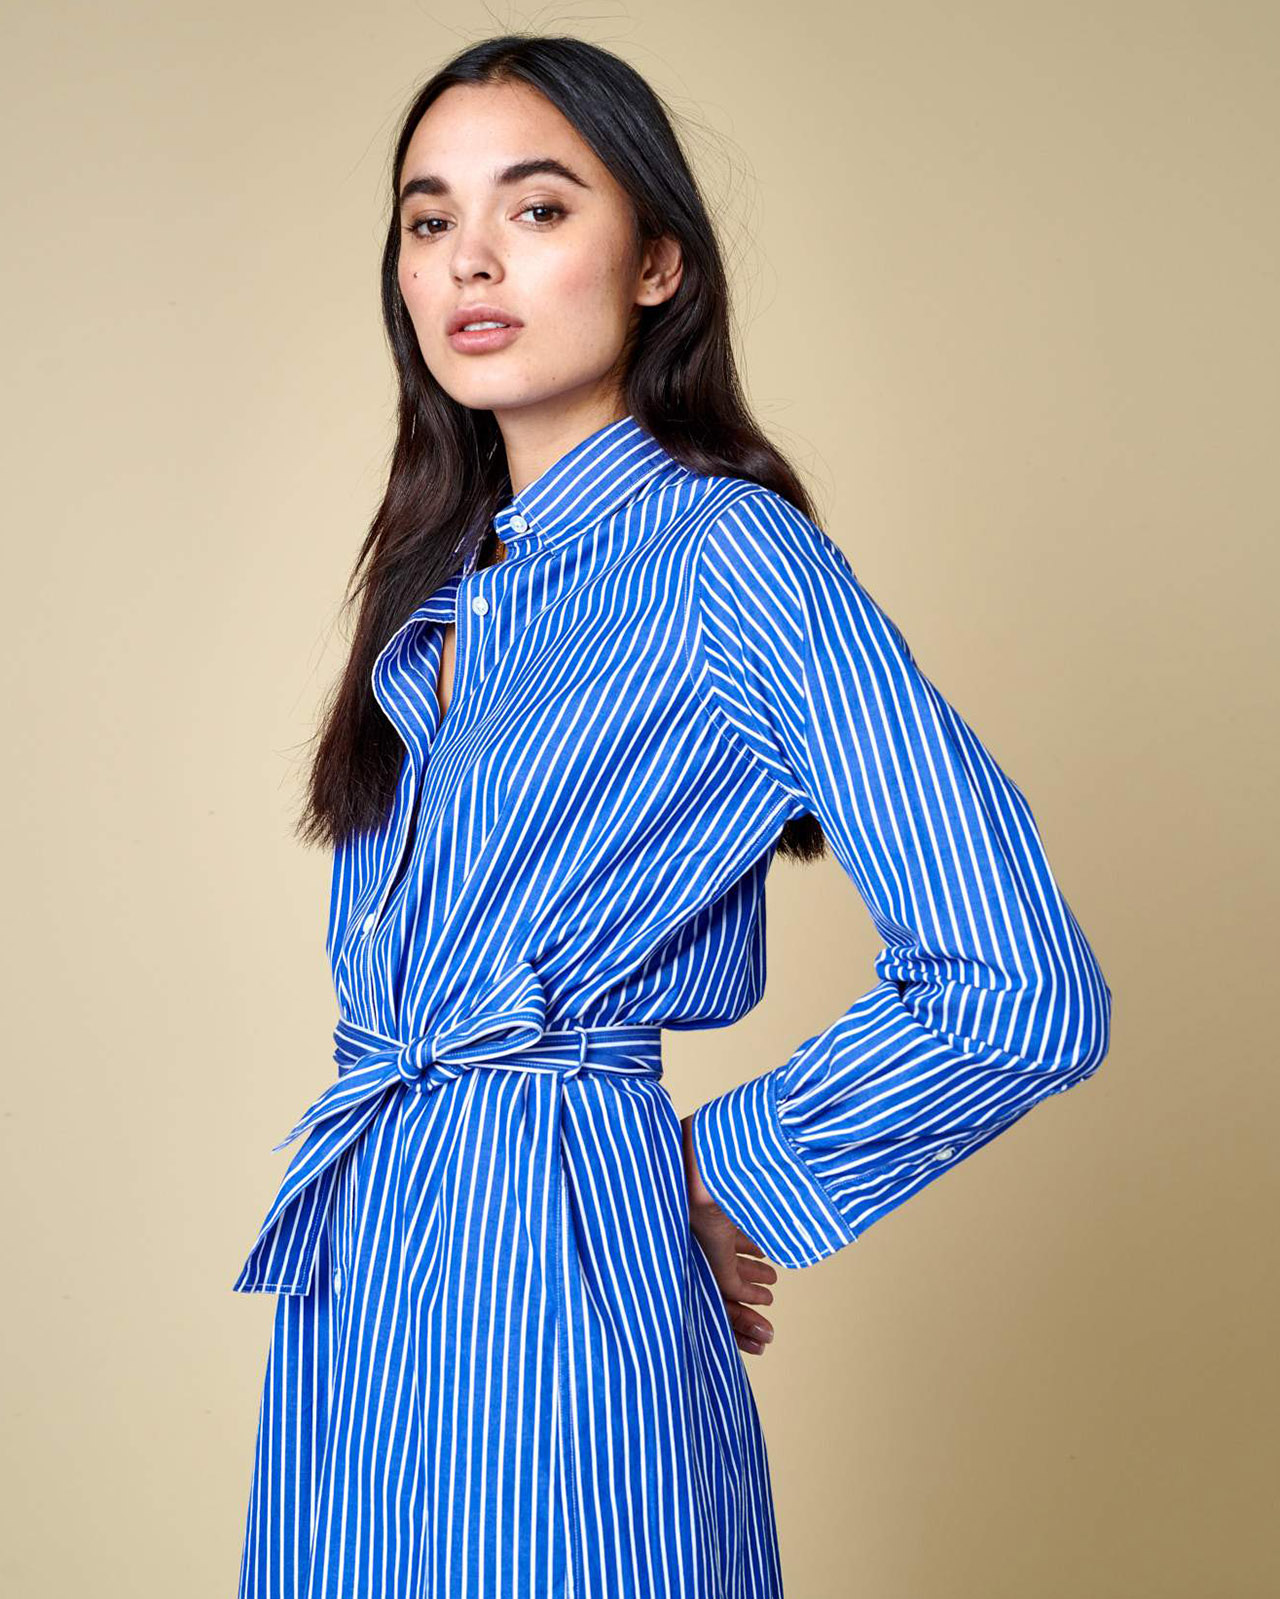 bellerose-stripedress-3.jpg